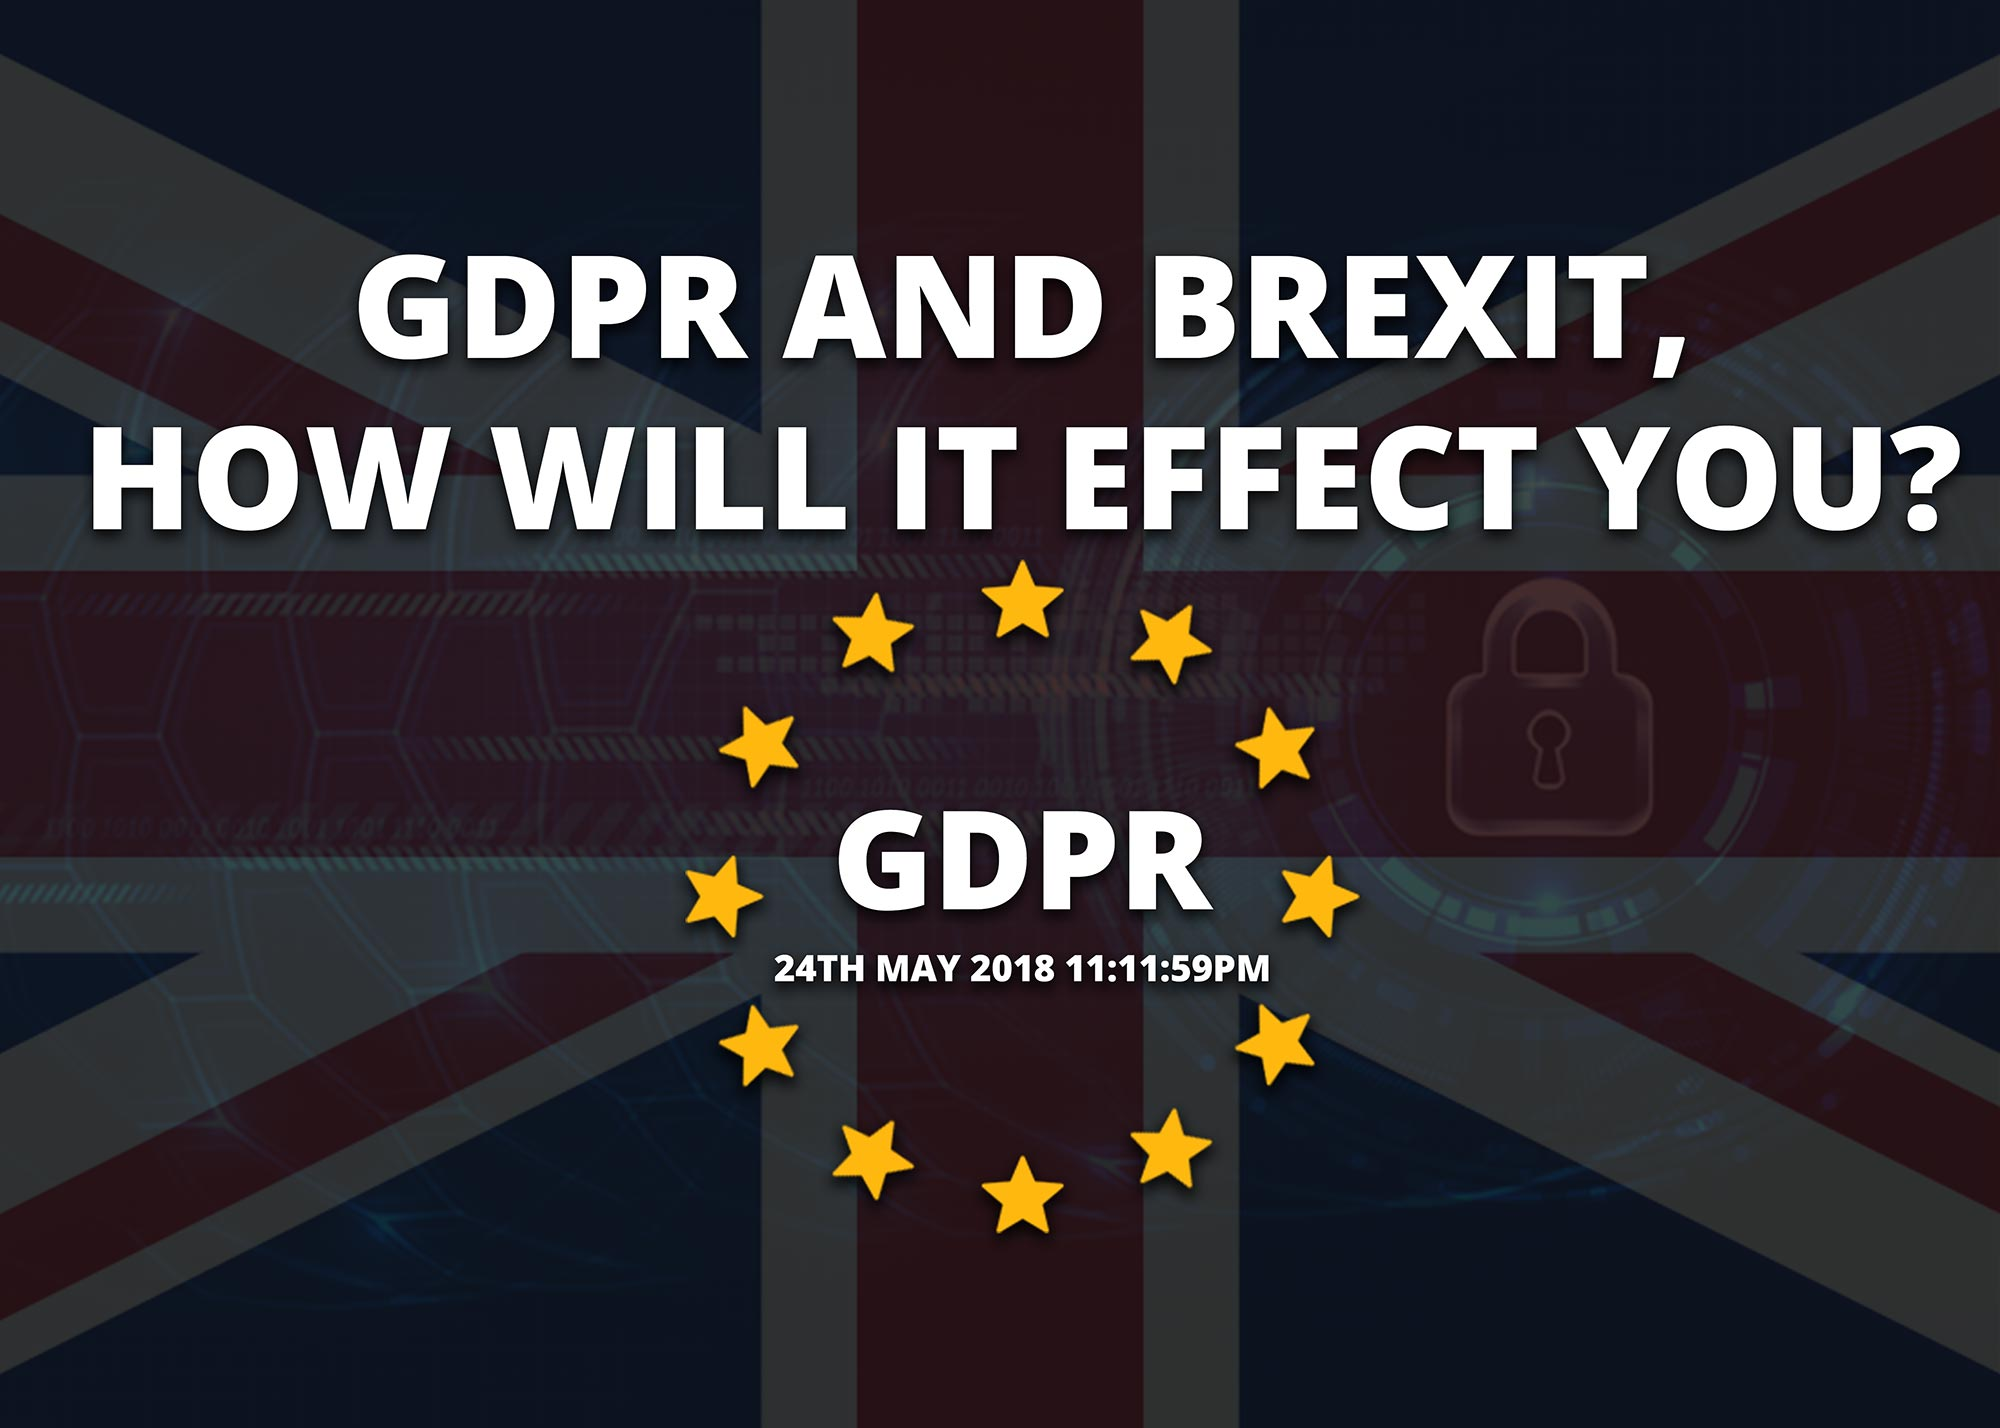 How will Brexit affect GPDR?